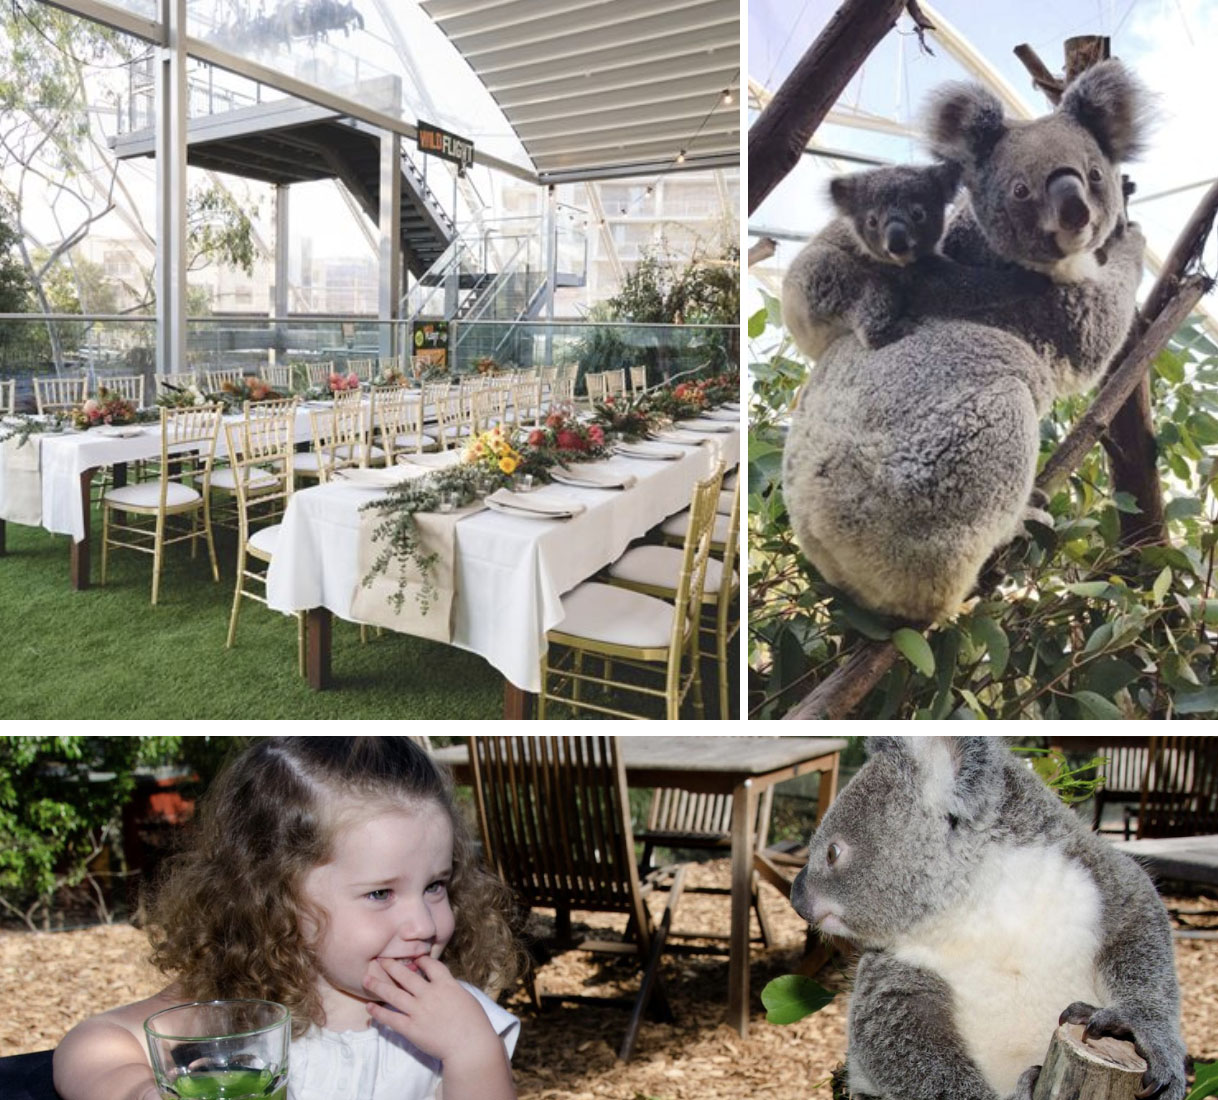 WILD LIFE Sydney Zoo Breakfast with Koalas